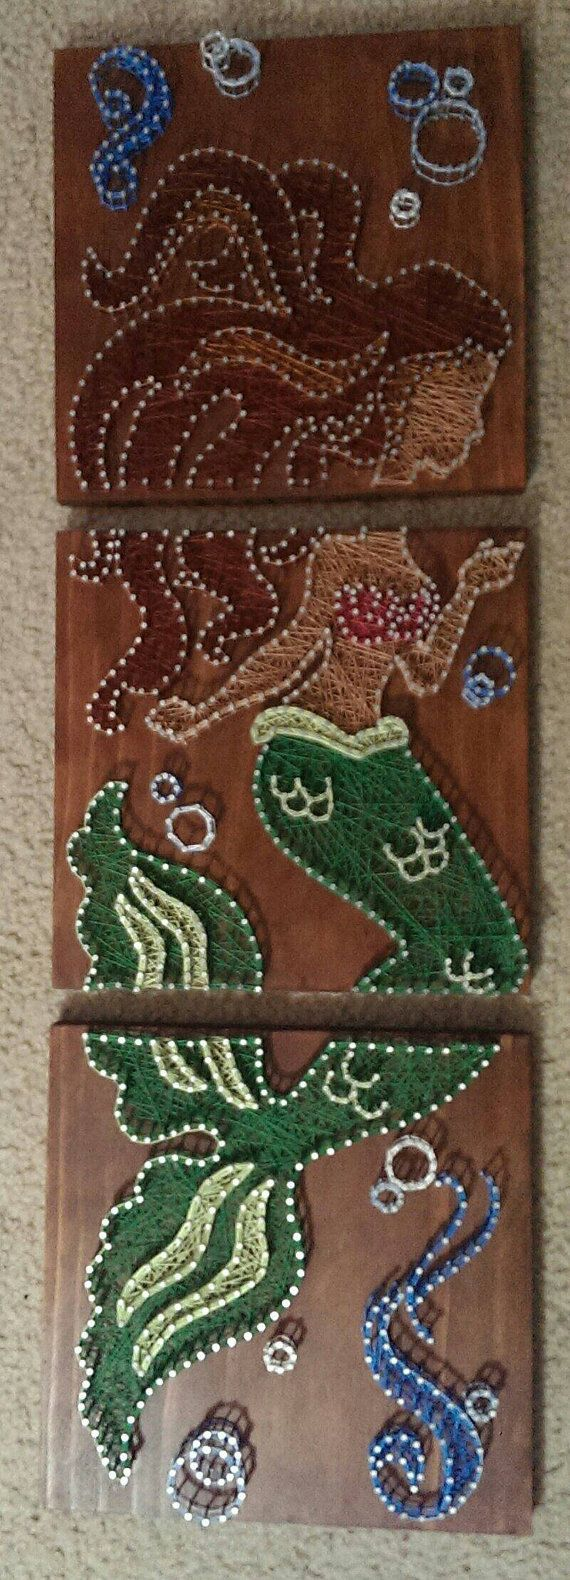 3 Panel Mermaid Nail and String Art by brokenwingArts on Etsy